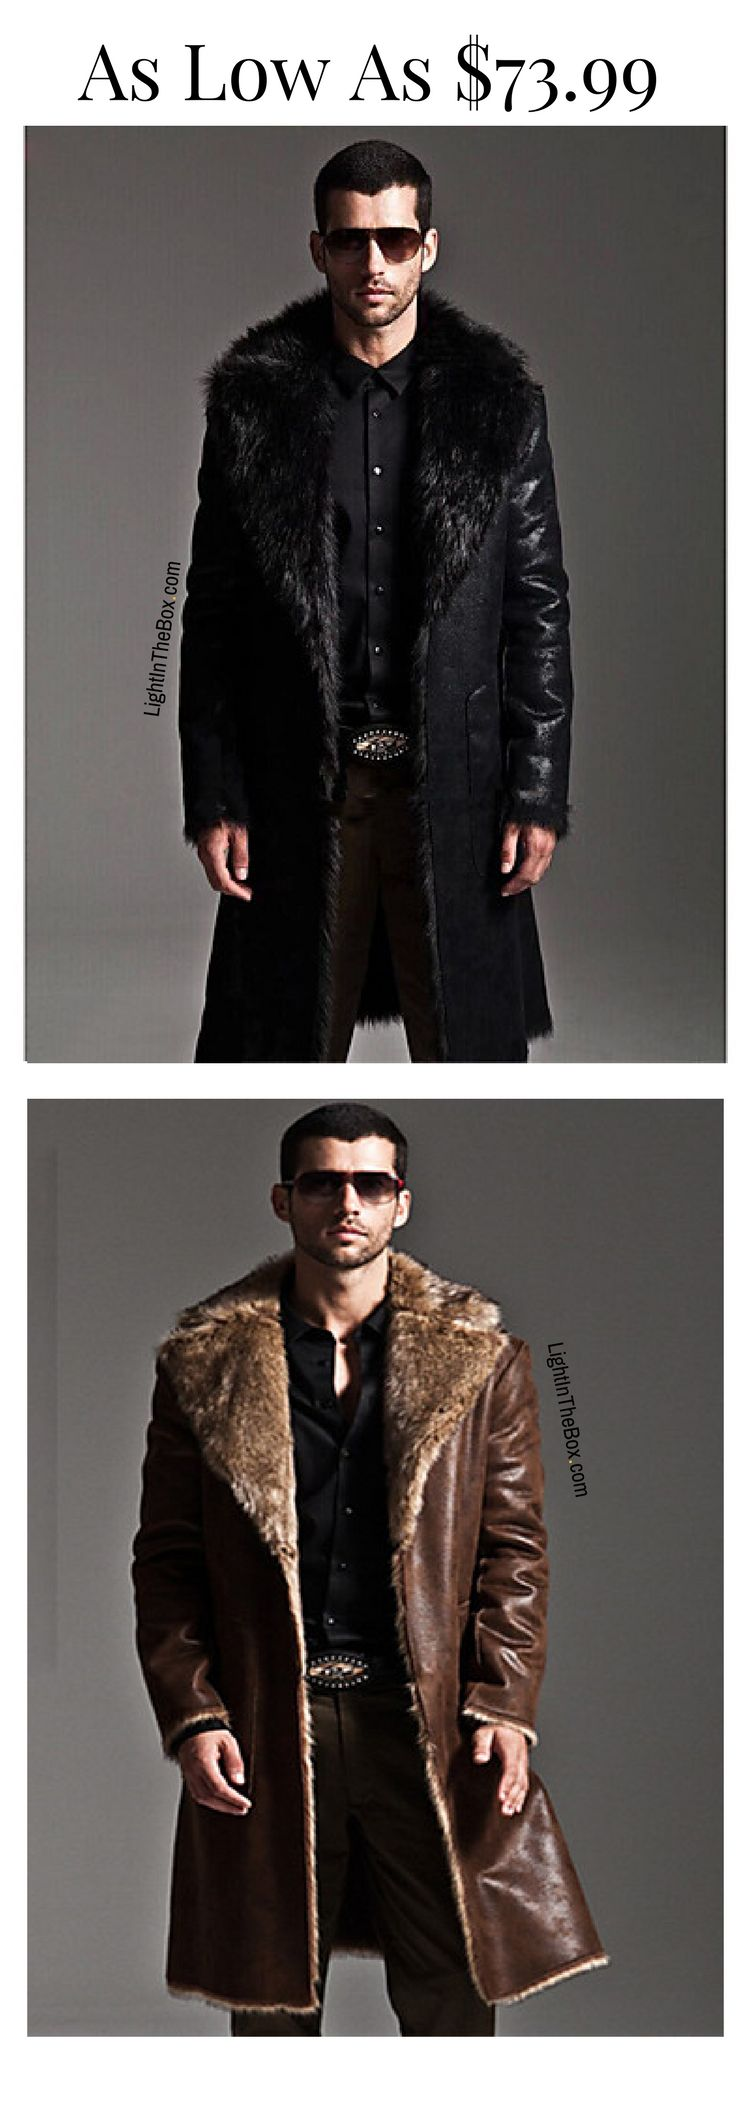 Who says men don't like fur?  Check out this fancy chic fur collar leather men coat. Which colour do you like most - black or brown? Click to shop at $73.99.